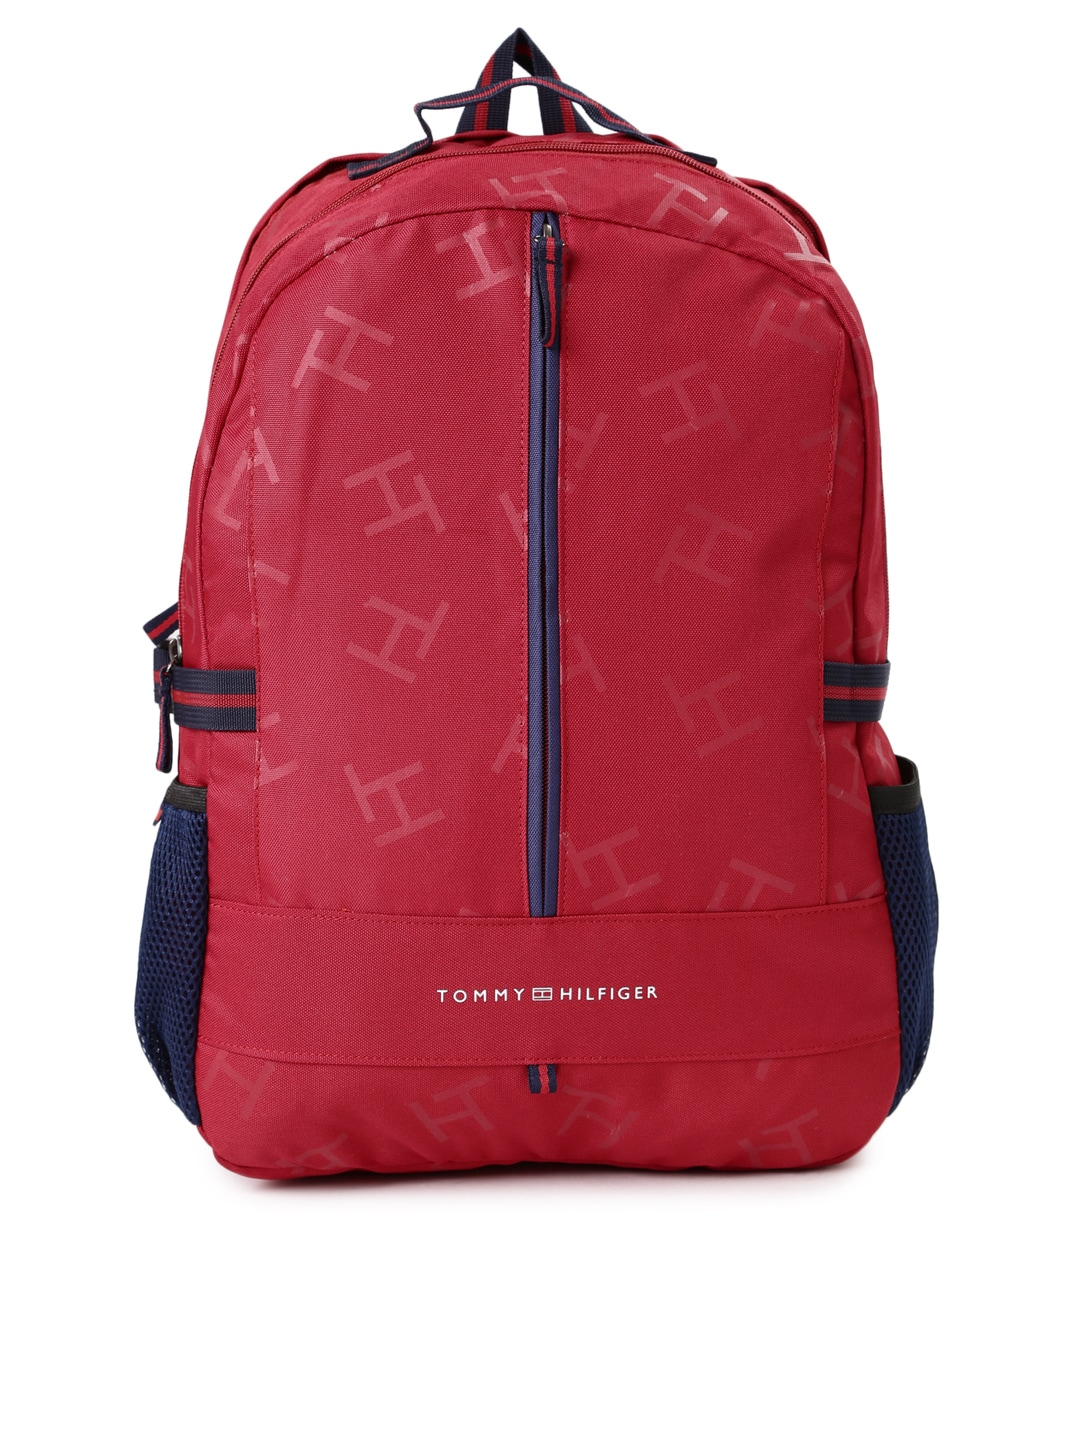 782bf3b24 Tommy Hilfiger Bags - Buy Tommy Hilfiger Bags Online - Myntra